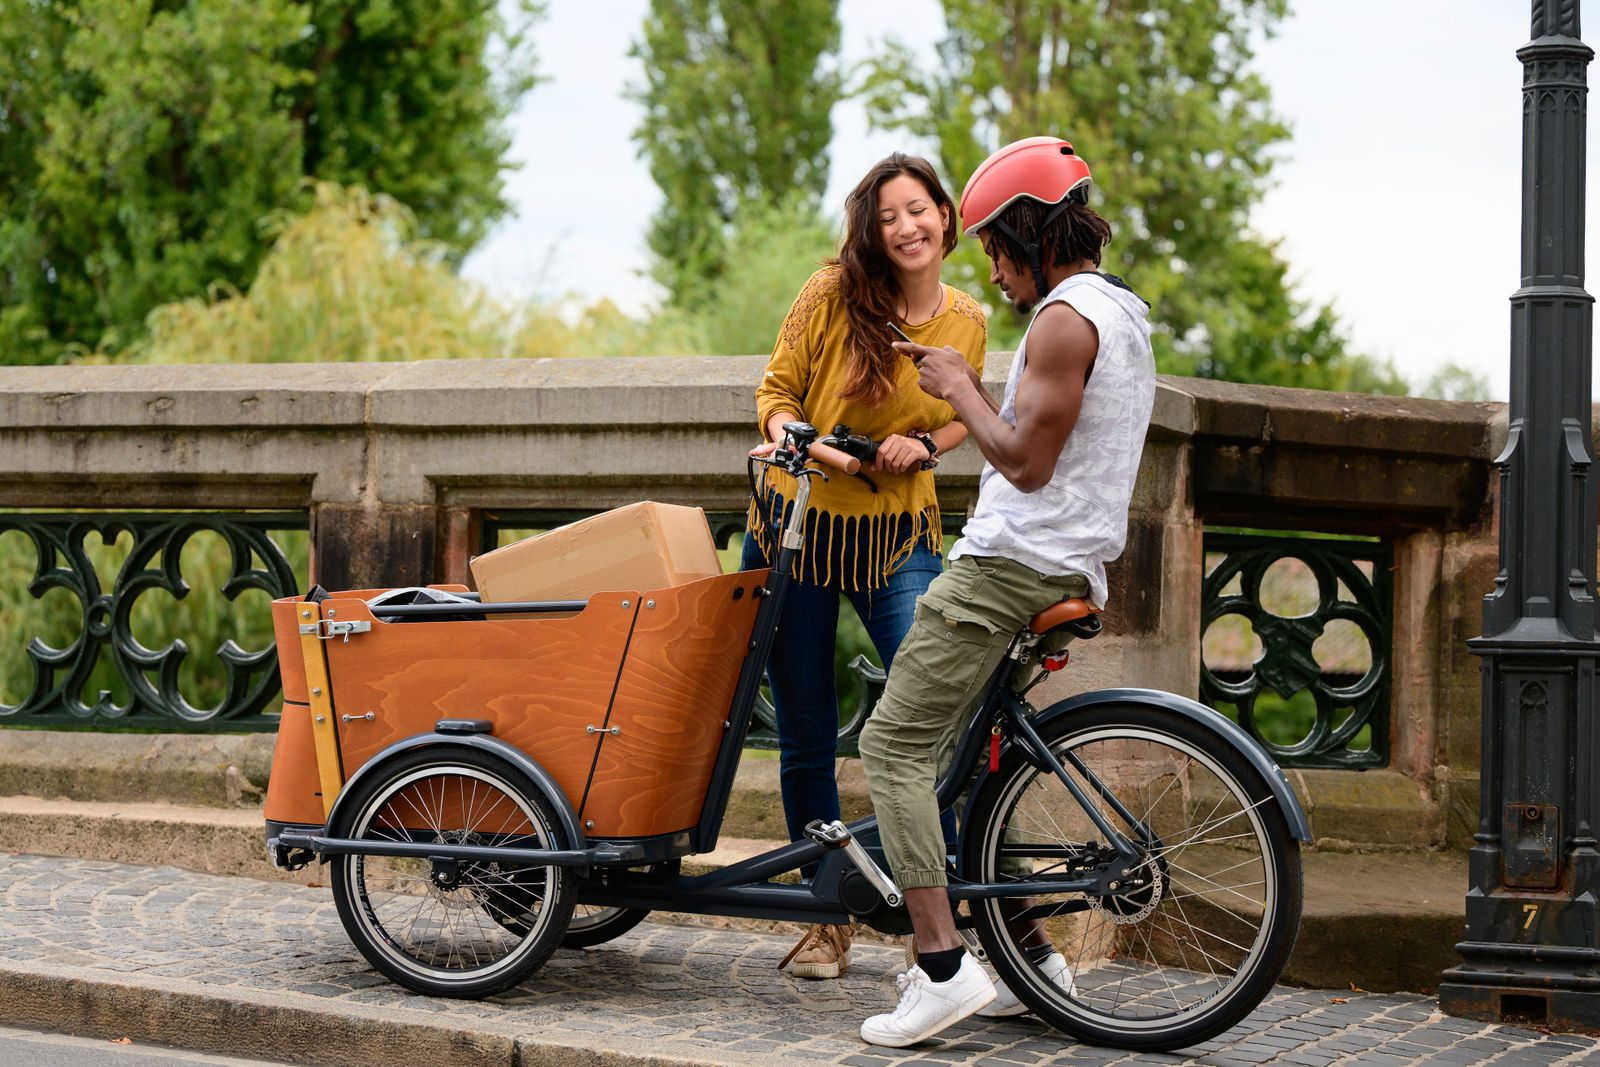 Couple with bicycle and cargo bike in urban surrounding